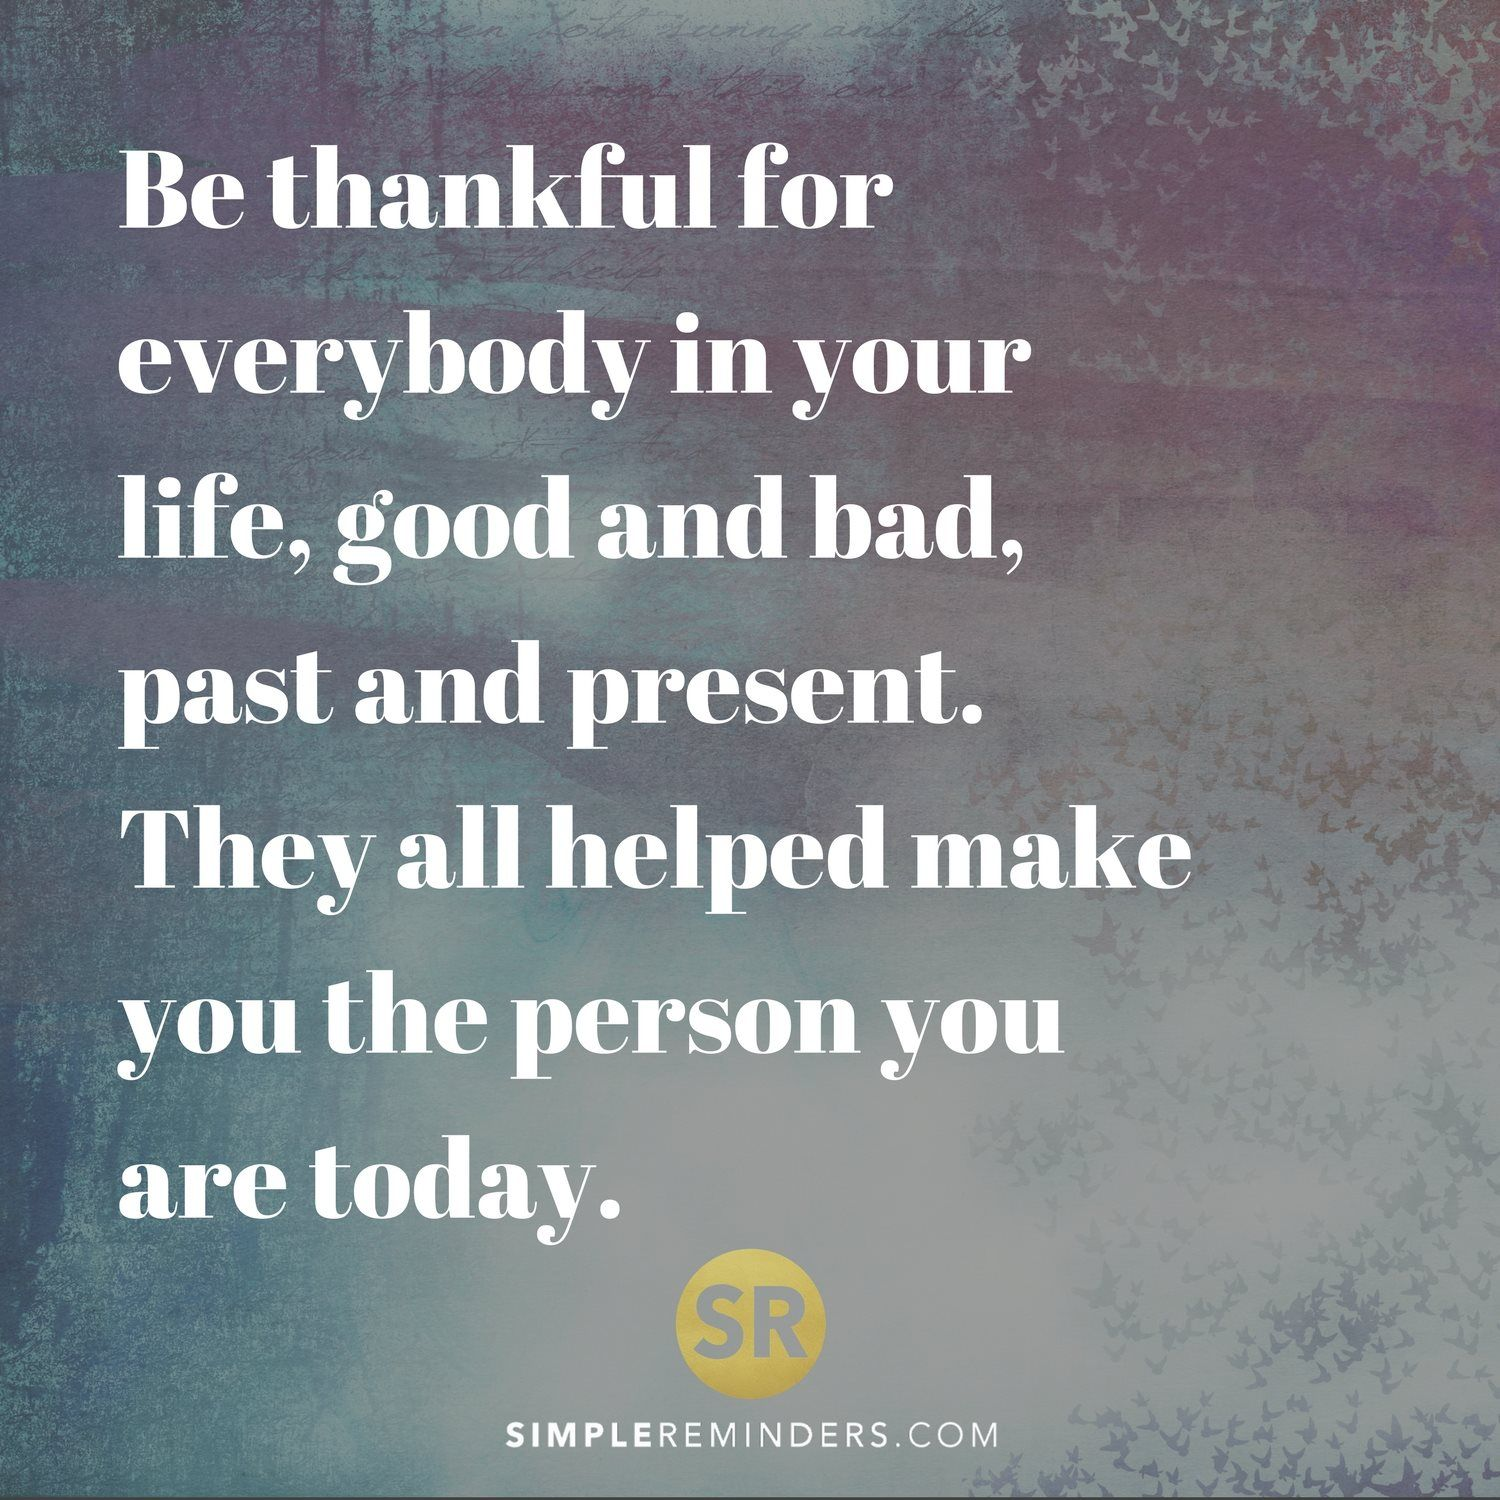 Be Thankful For Everybody In Your Life Good And Bad Past And Present They All Helped Make You The Person You Are To Bad Quotes Work Quotes Quotes To Live By